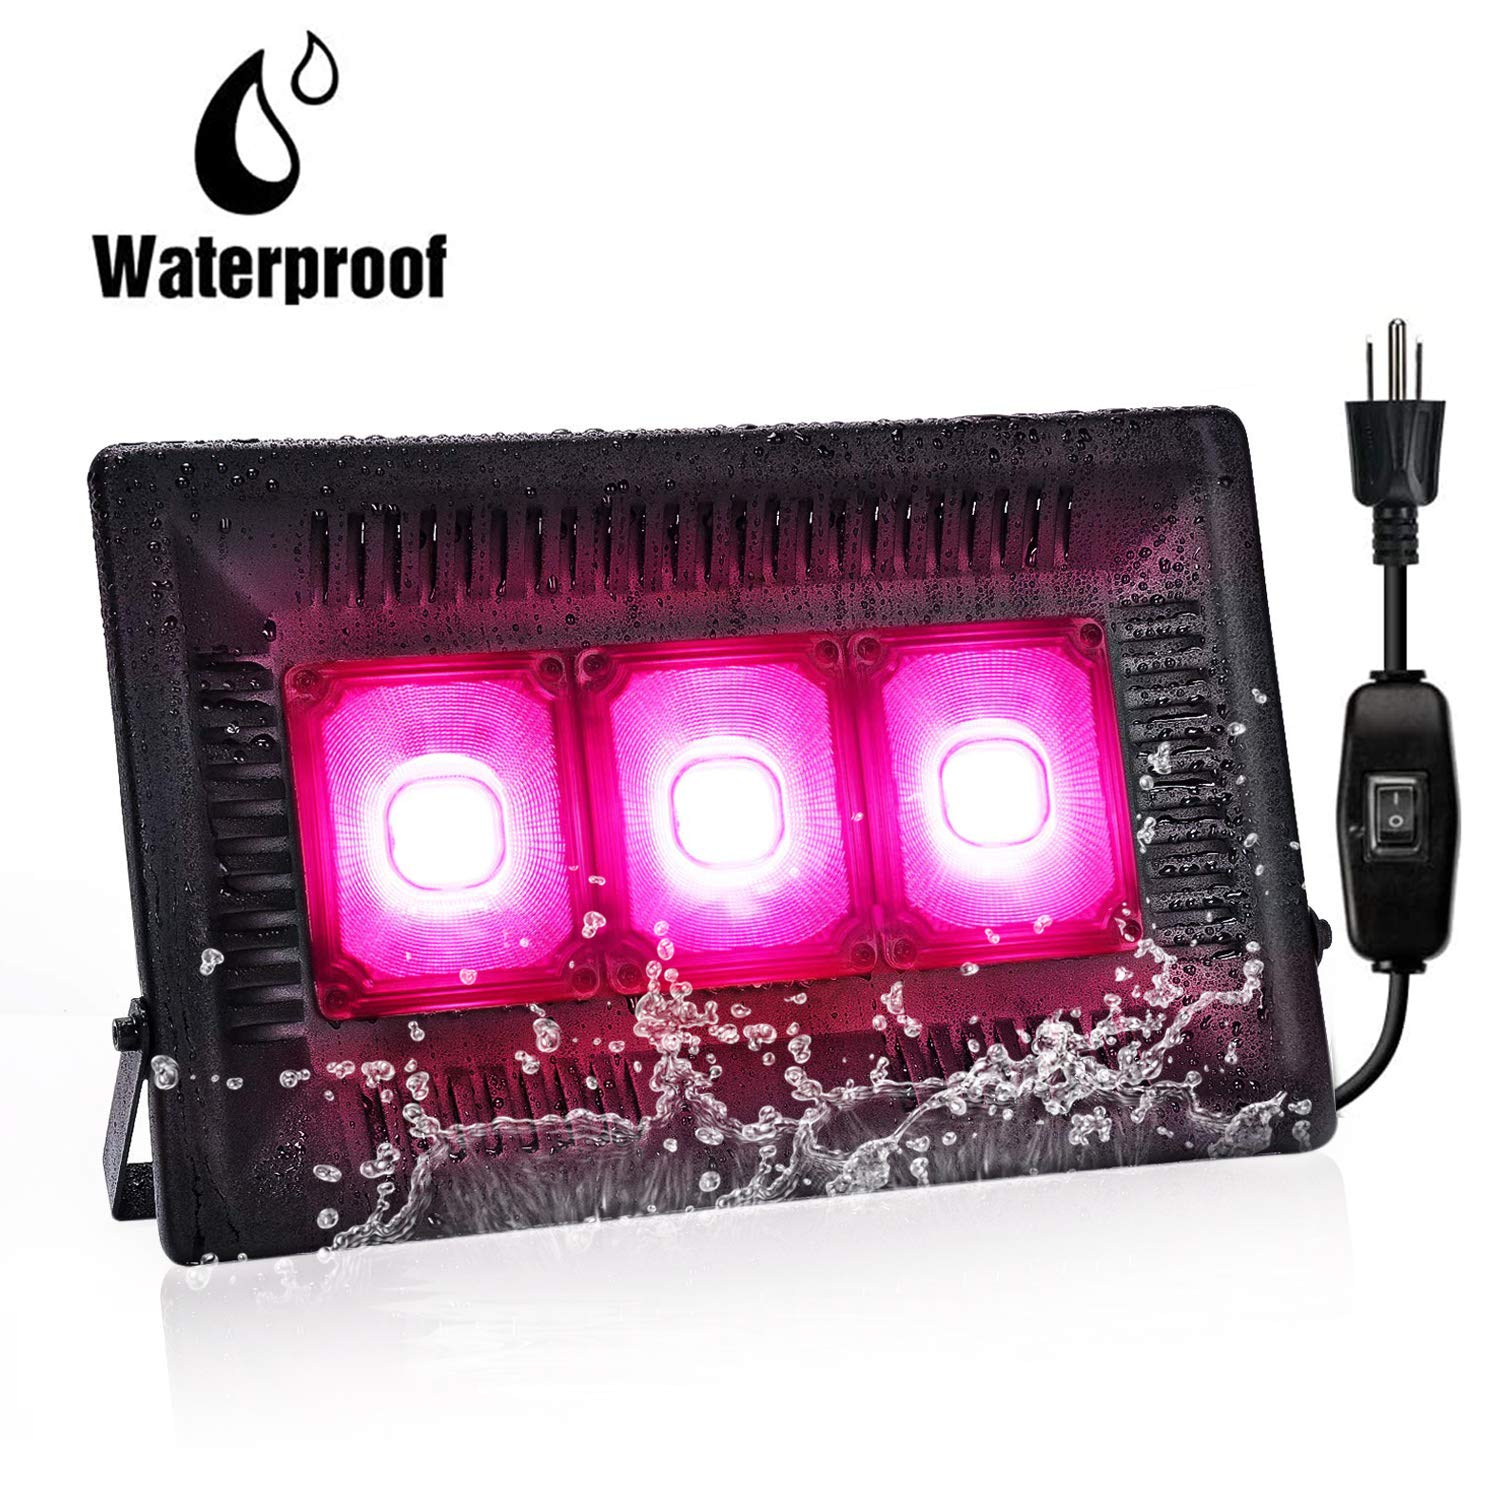 Bozily 450W Waterproof COB Led Grow Light, Full Spectrum Grow Lights,Plant Grow Light with Natural Heat Dissipation,Refugium Light for Indoor Outdoor Plants,Seedling,Growing,Blooming and Fruiting